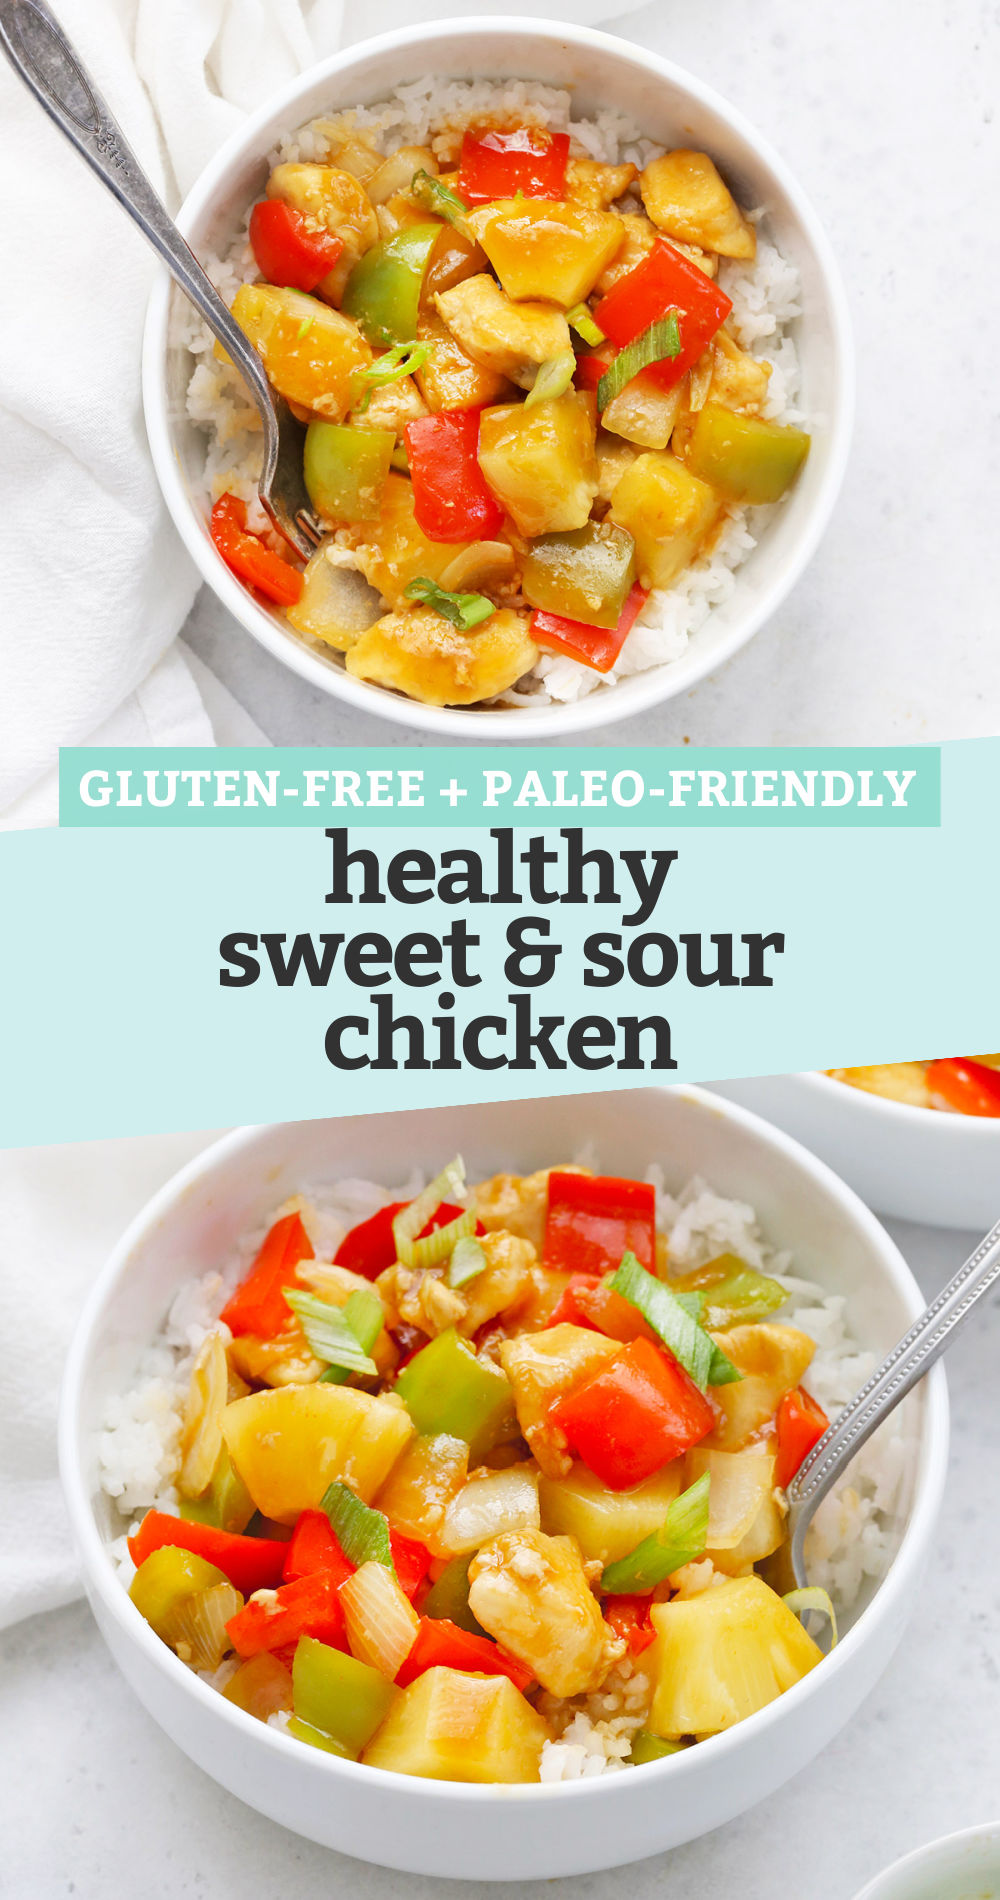 """Collage of images of healthy sweet and sour chicken with text overlay that says """"Gluten-Free + Paleo-Friendly Healthy Sweet & Sour Chicken"""""""